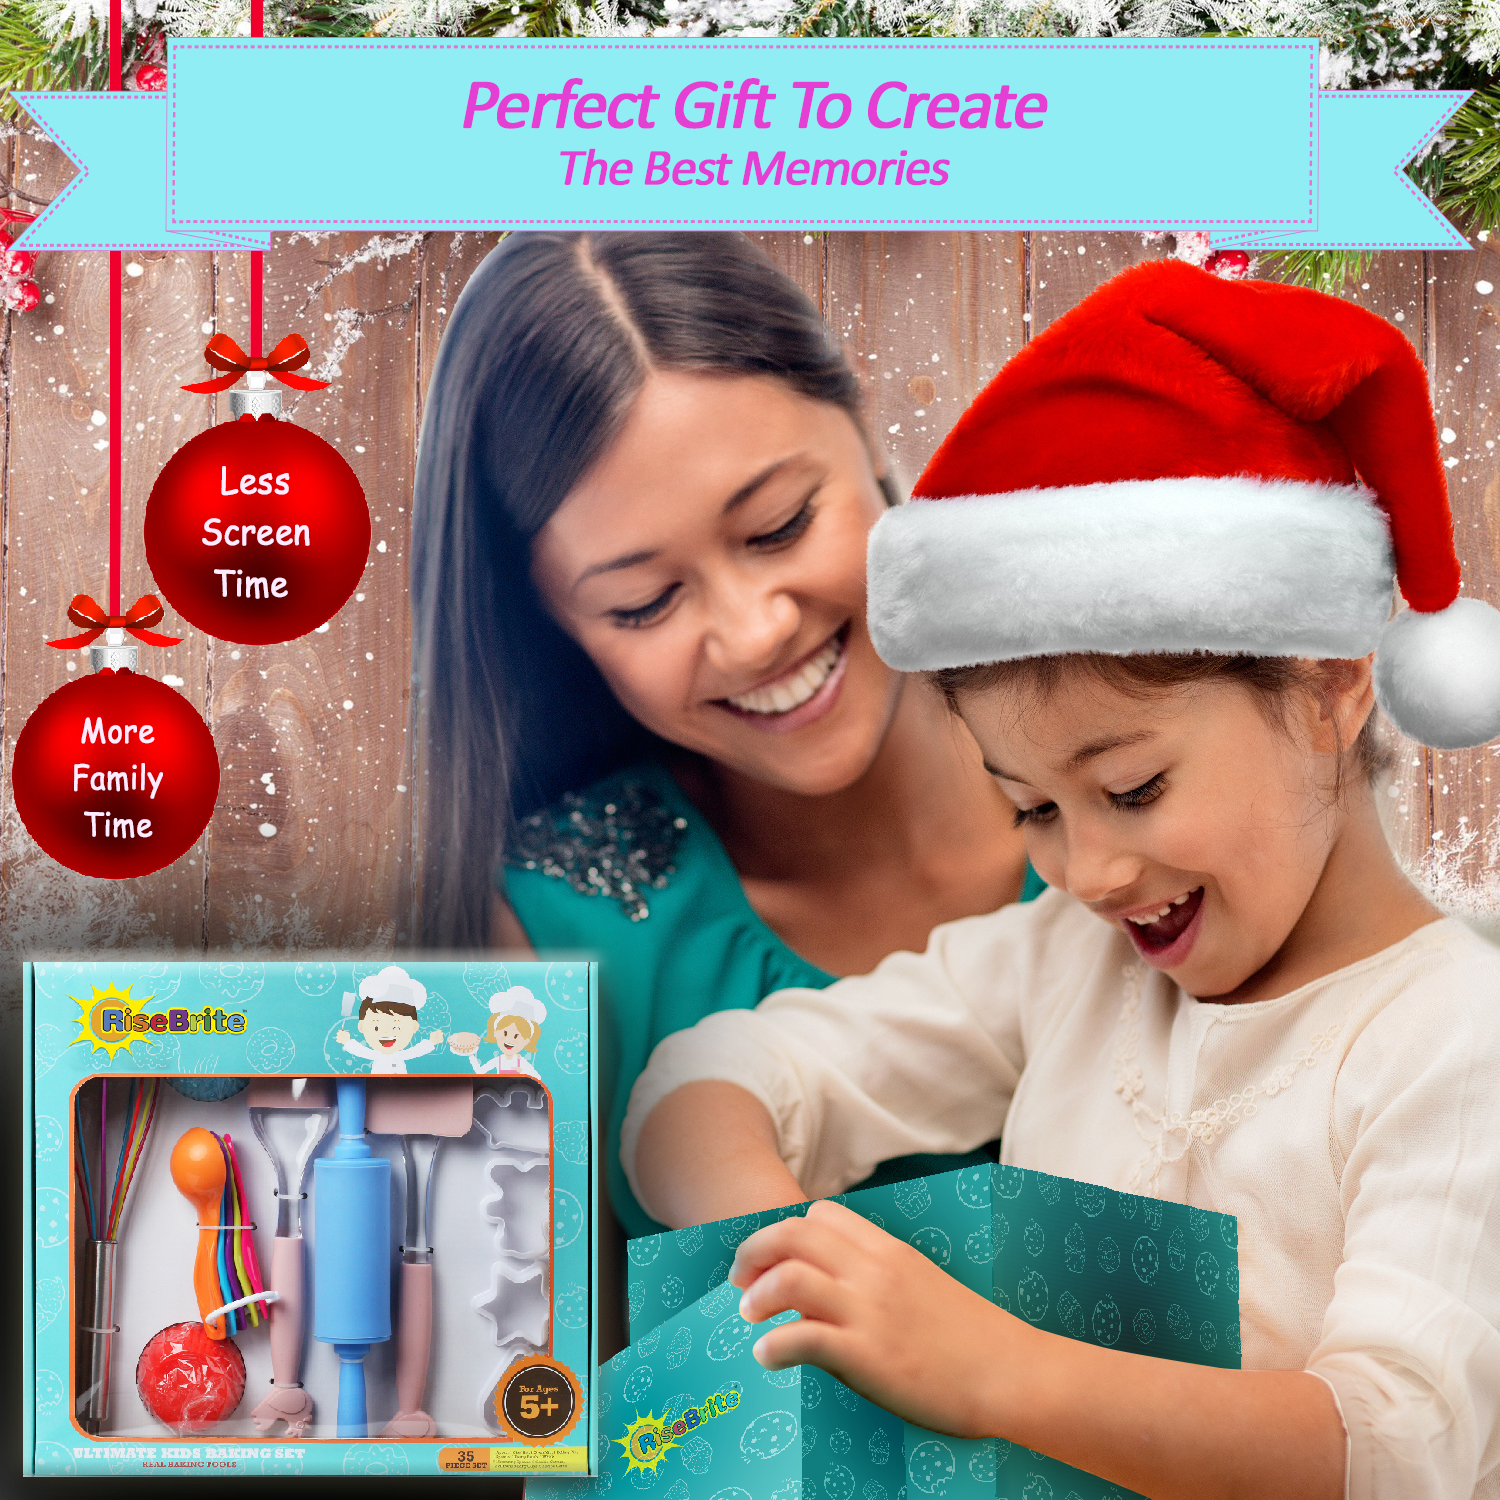 RiseBrite Kids Baking Set Come In A Beautiful Box, Perfect For Gift Giving